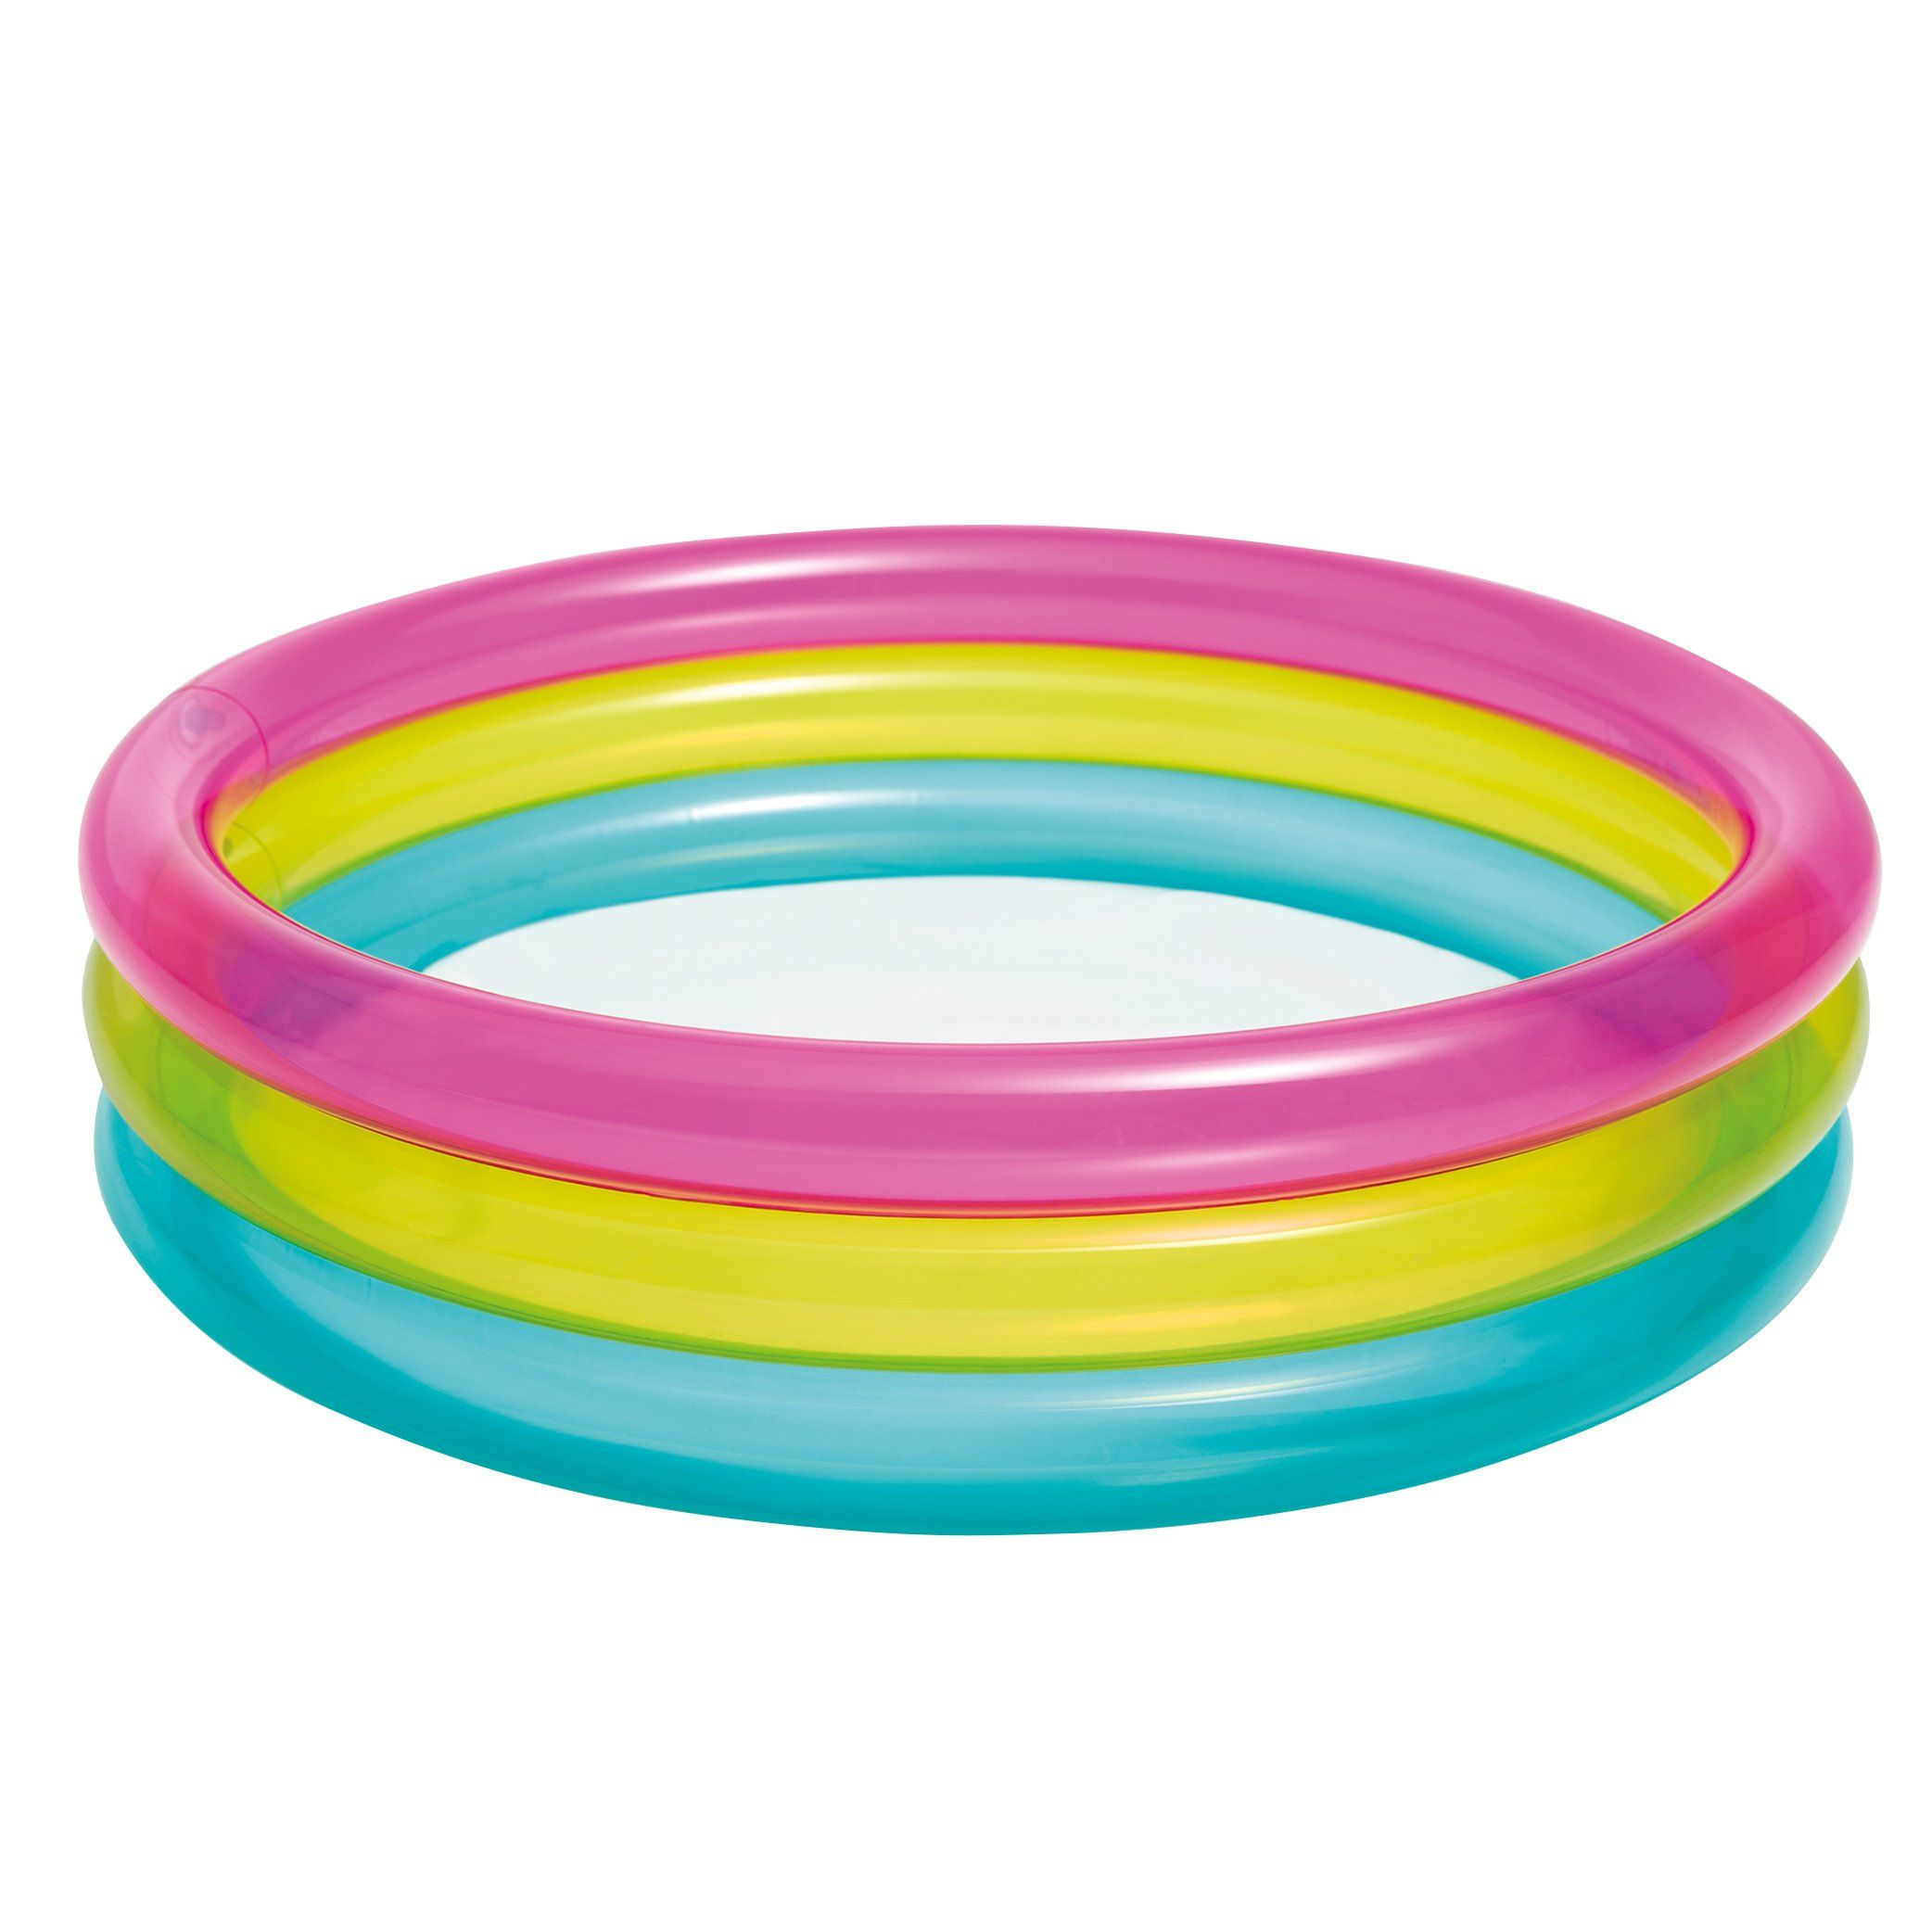 Intex Rainbow Baby Pool For Ages 1 3 34 X 10 Pink Yellow Blue Designed With Three Bright Colored Rings Intex